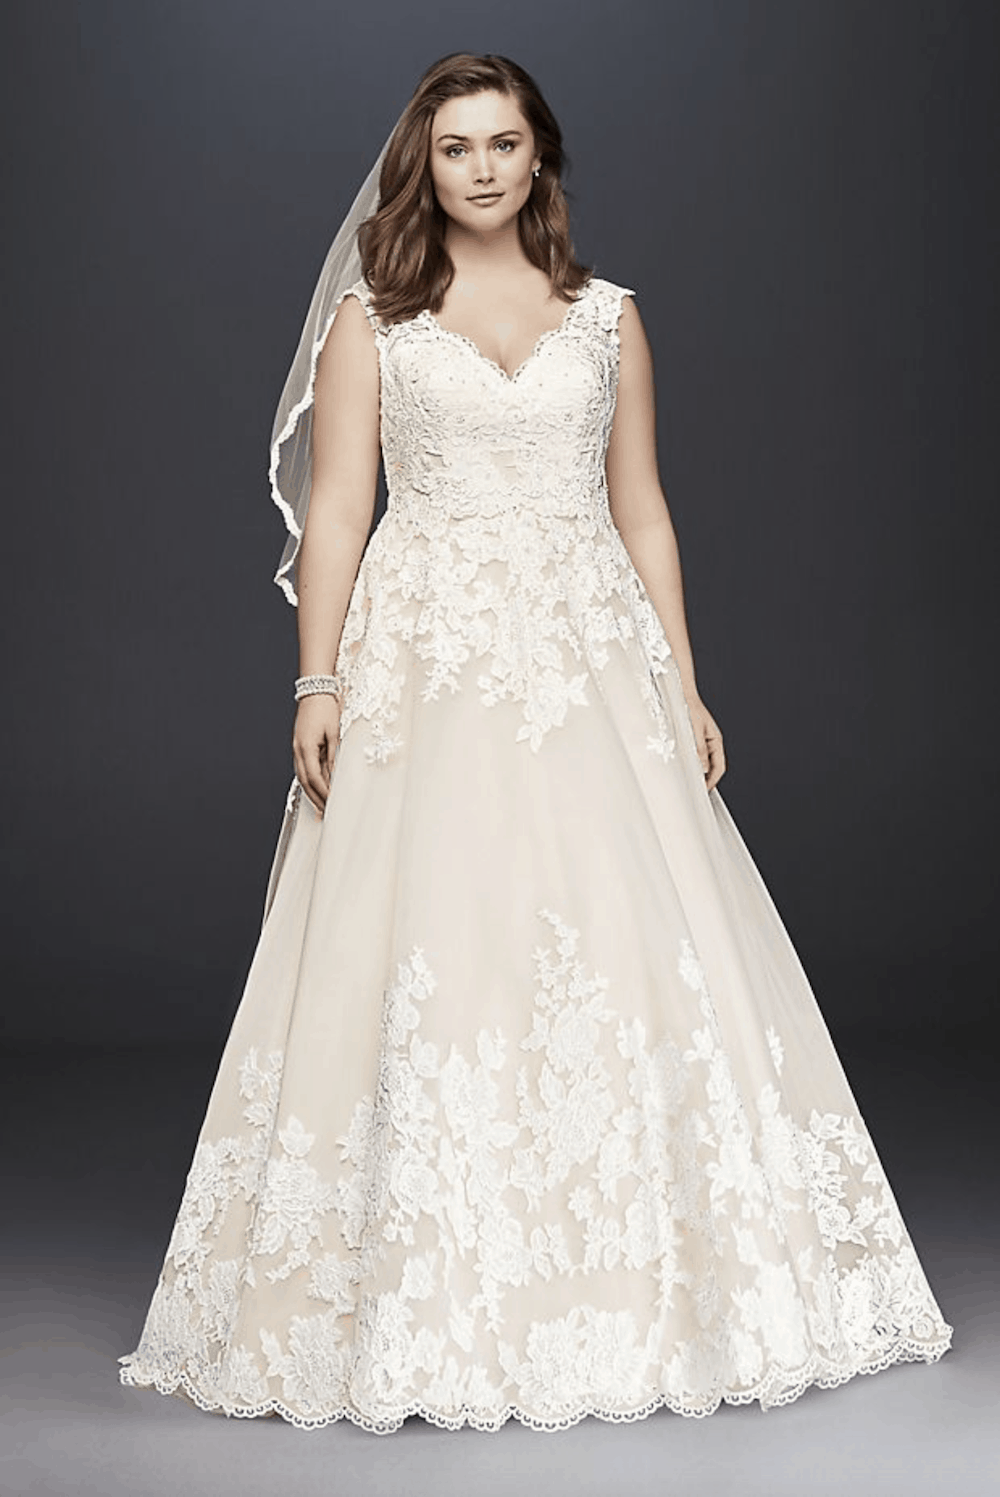 Plus Size Wedding Dresses Simple Bridal Gowns with Sleeves Bohemian Lace Davids Bridal